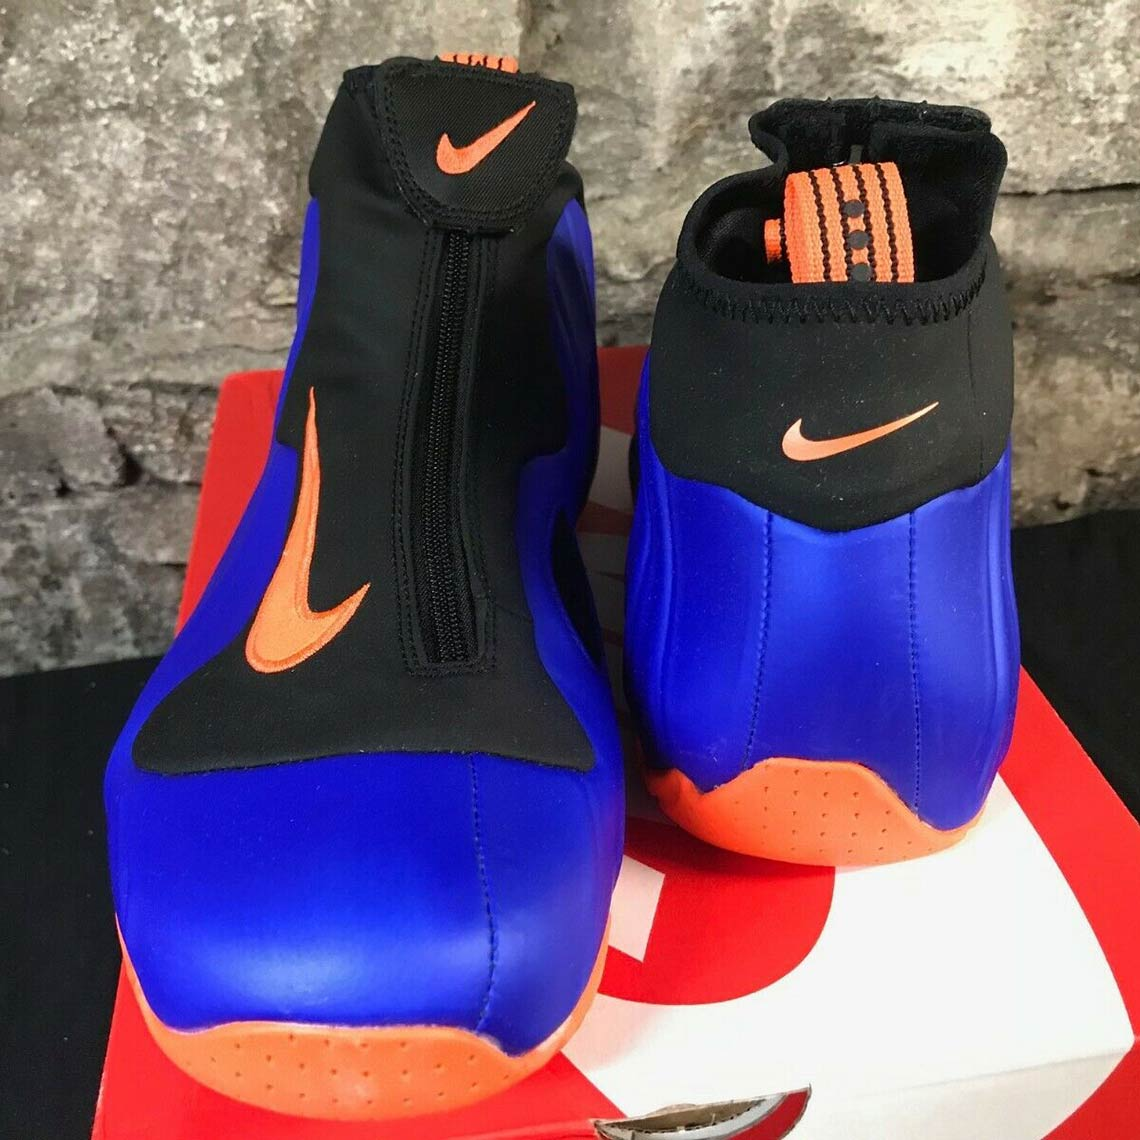 27ea5488124e ... Nike Air Flightposite that was worn by Allan Houston the year the  Knicks went to the NBA Finals against the San Antonio Spurs. The Knicks may  have lost